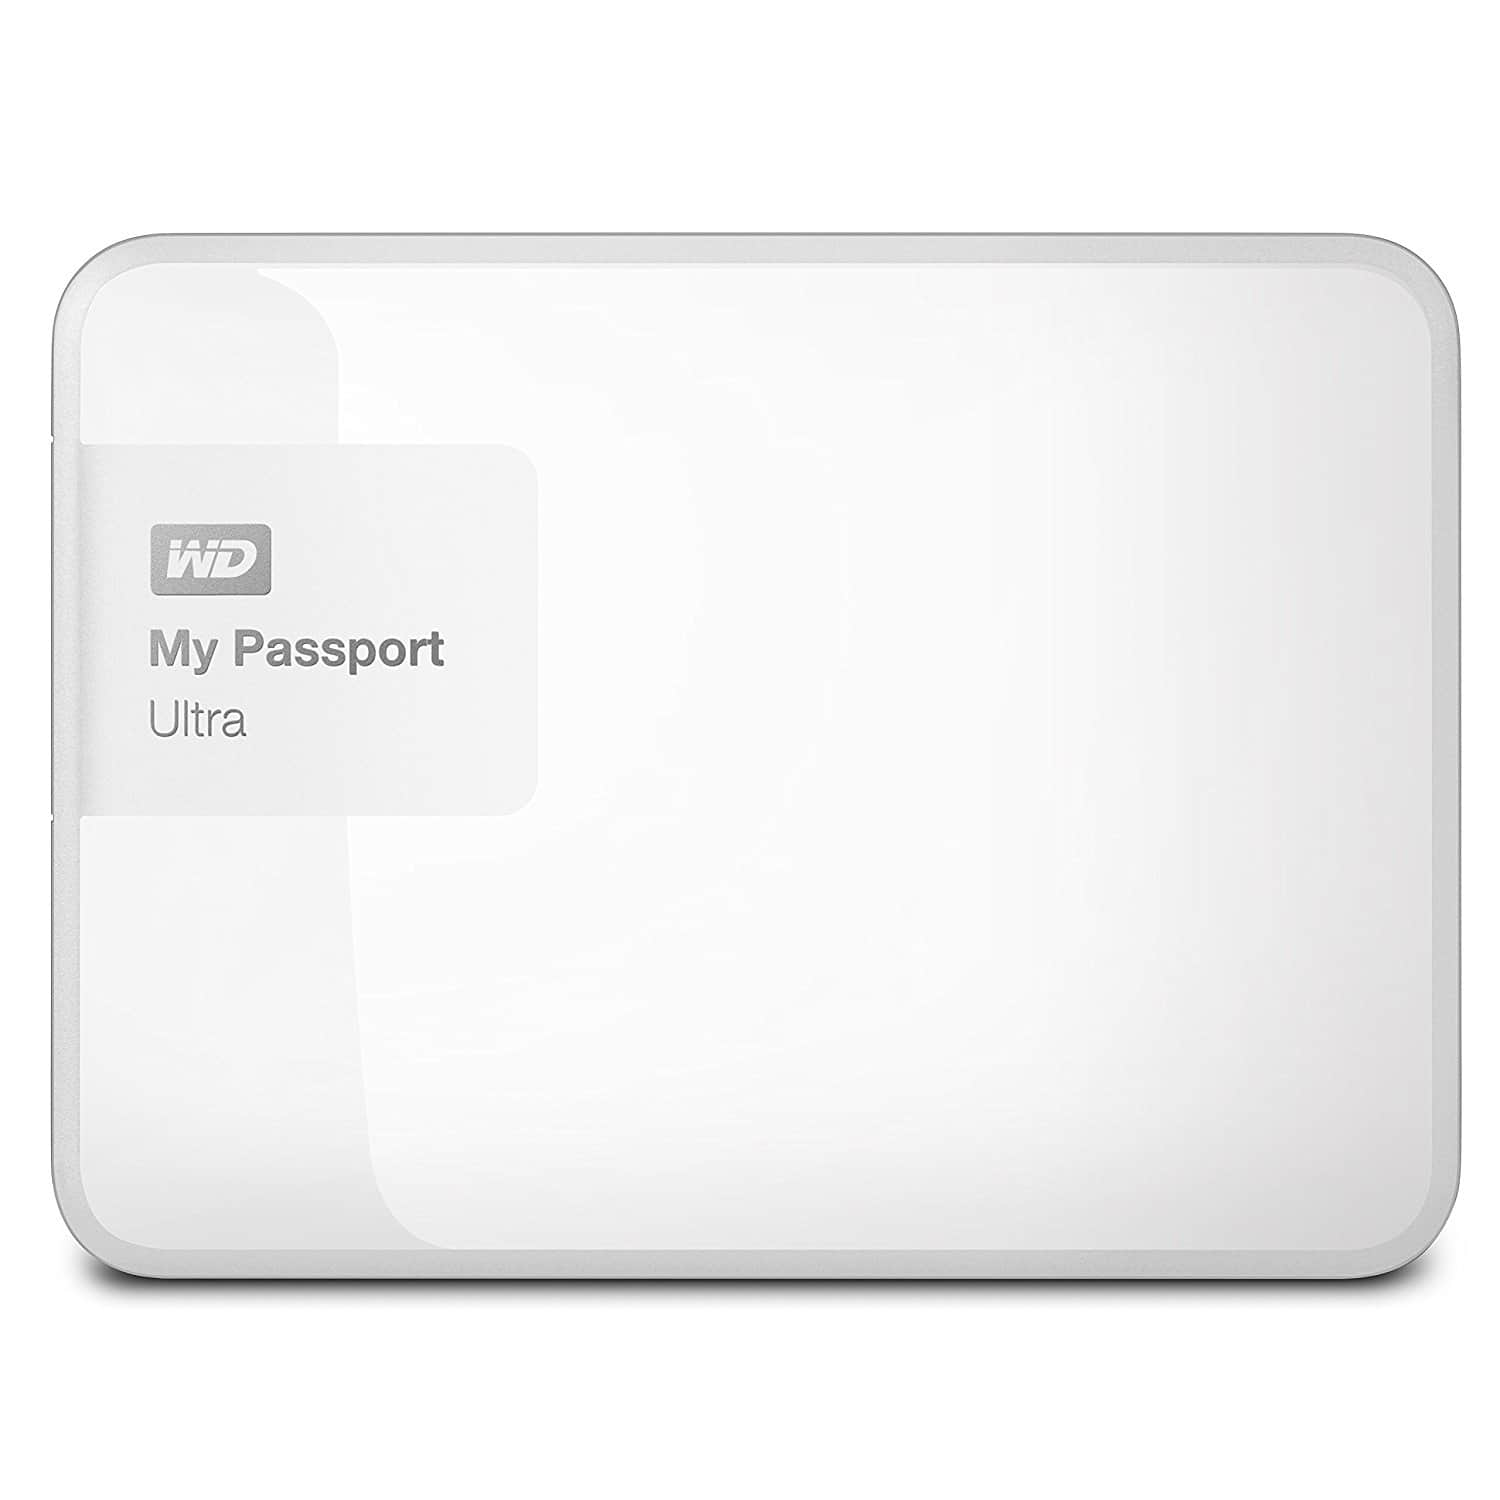 3TB WD My Passport Ultra (White) USB 3.0 $75.99 + Free Shipping